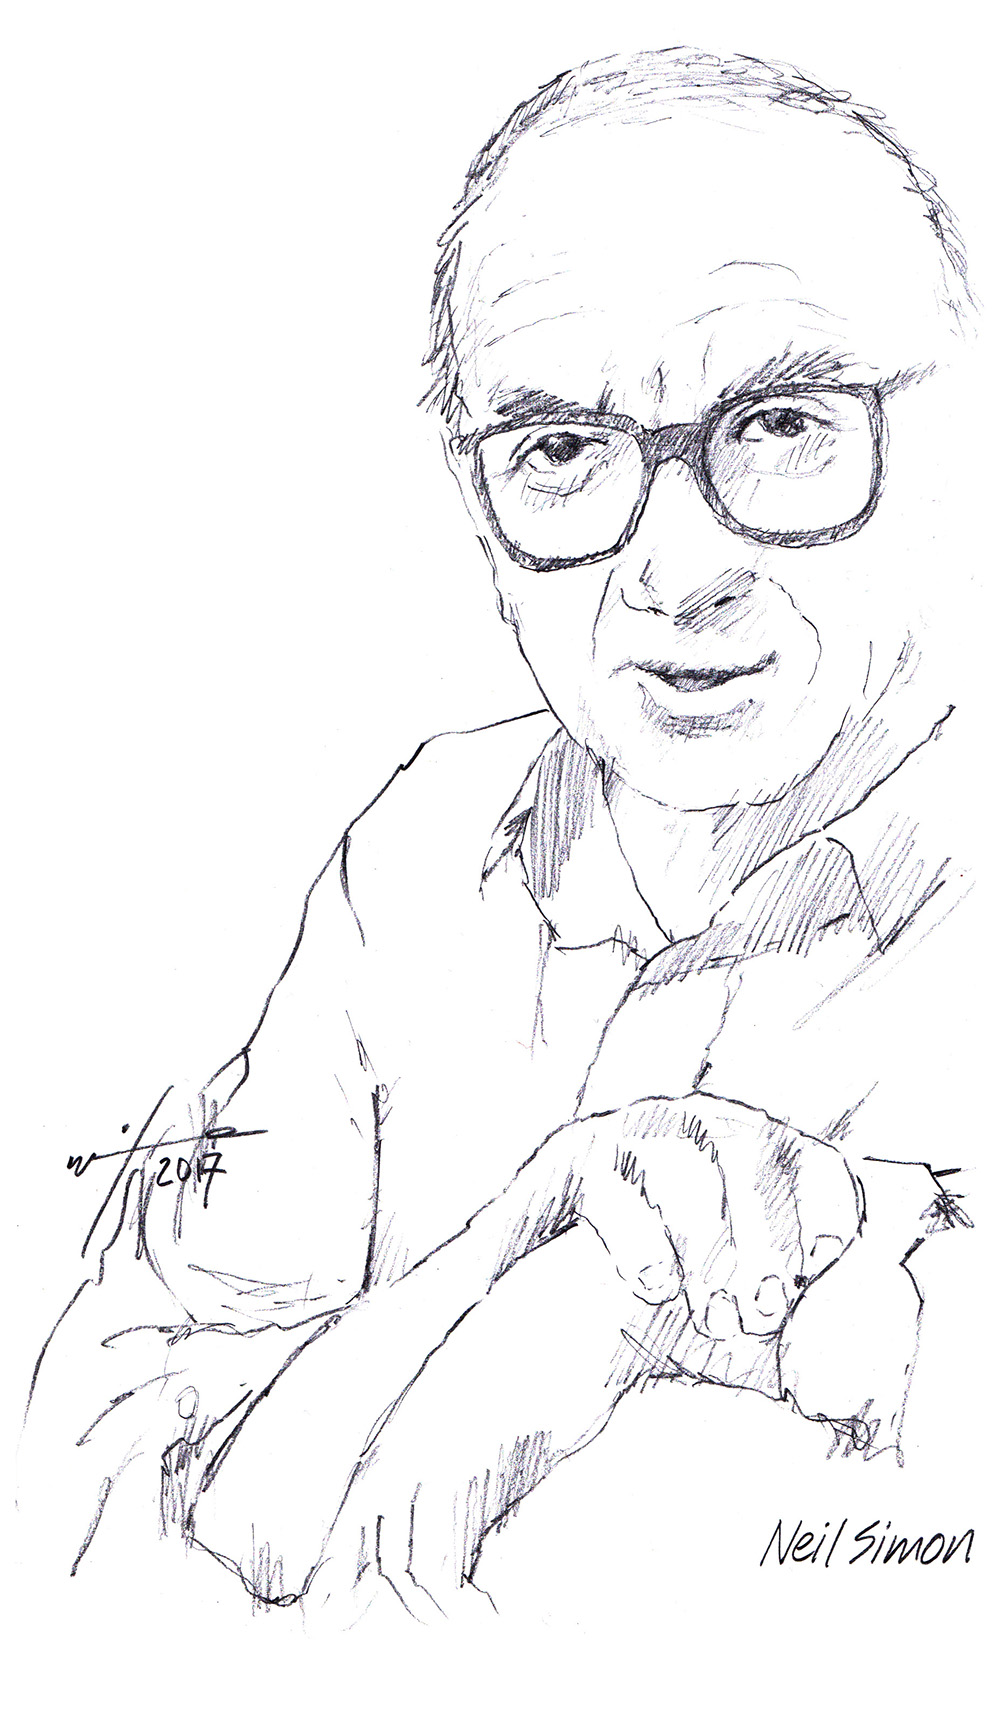 Drawing of writer Neil Simon